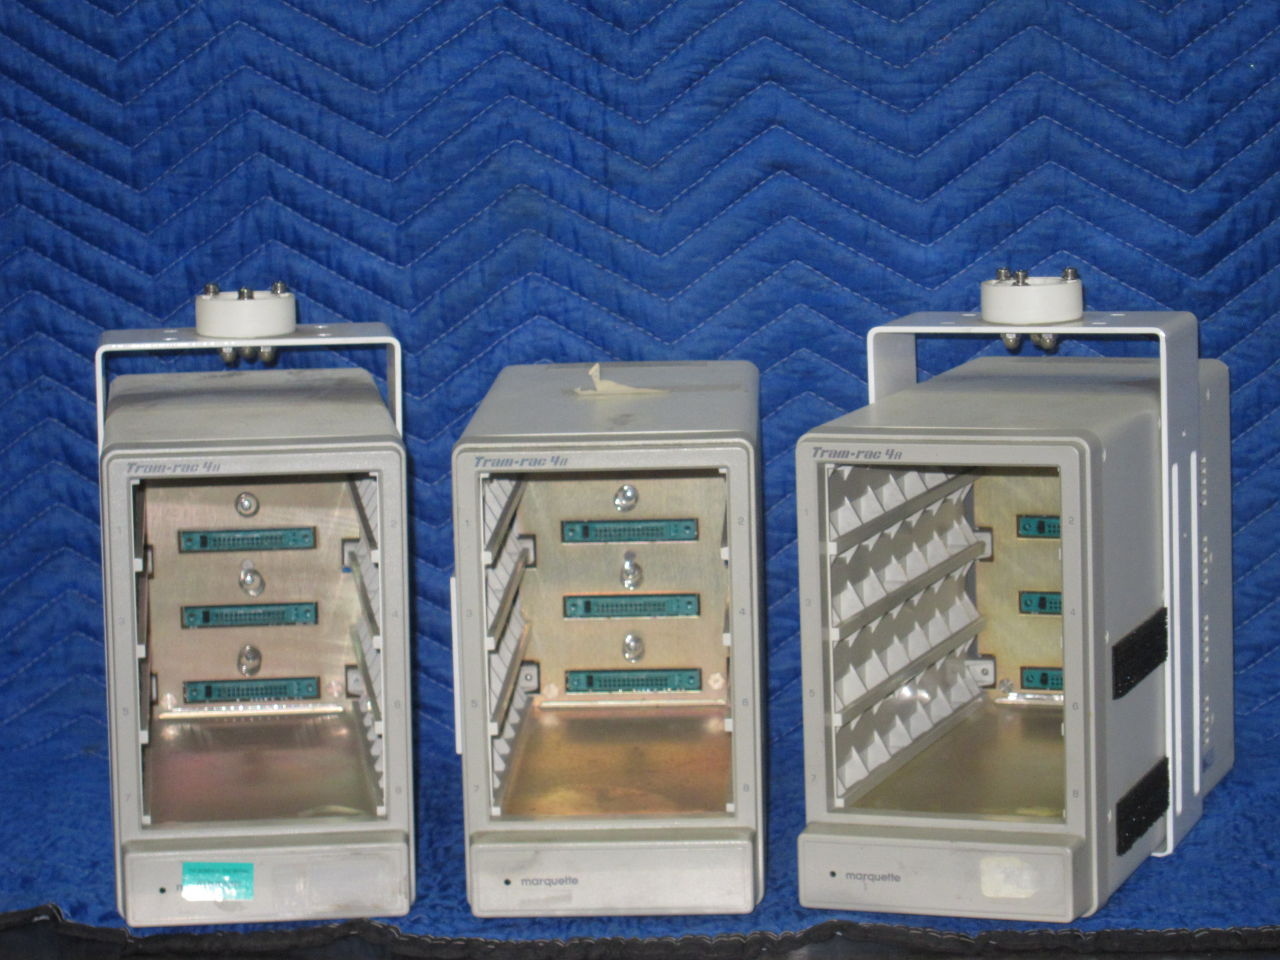 MARQUETTE Tram-Rac 4A  - Lot of 3 Module Rack